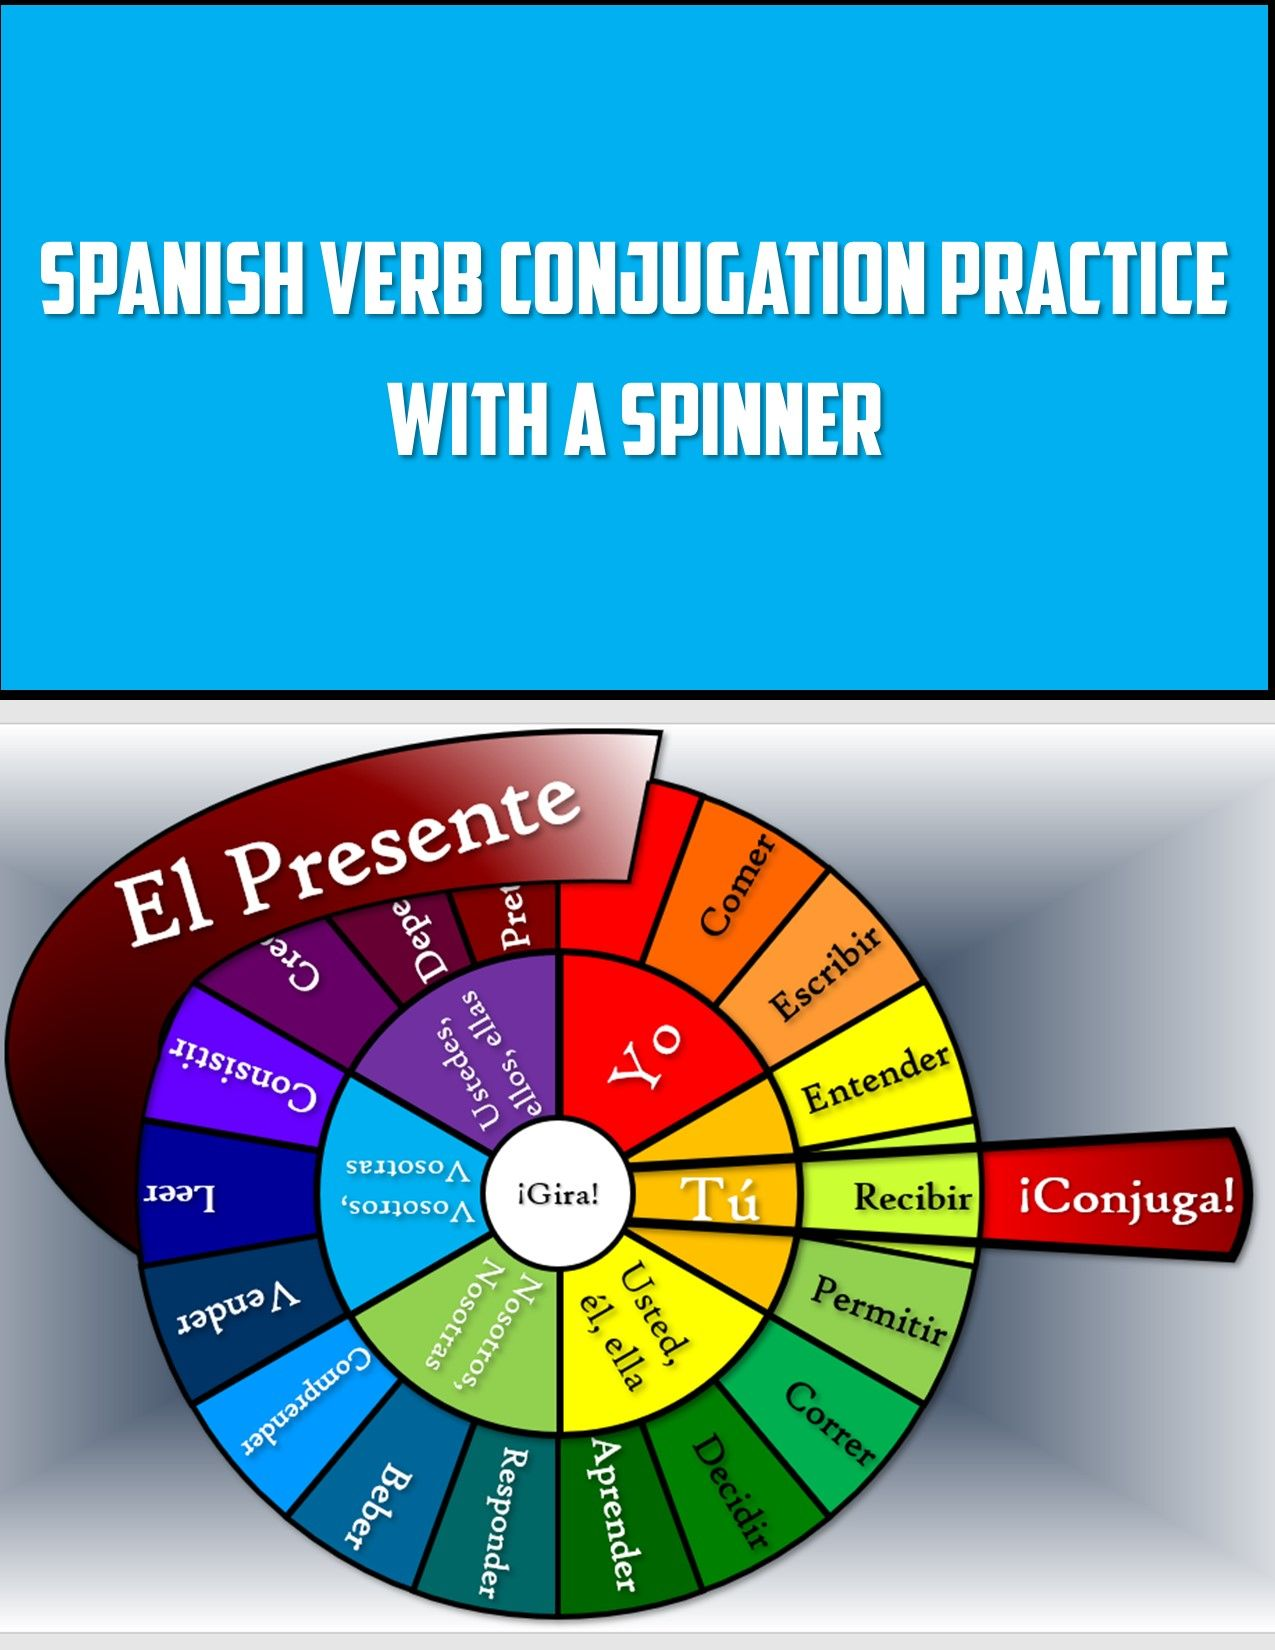 Spanish Verb Conjugation Practice With A Spinner In